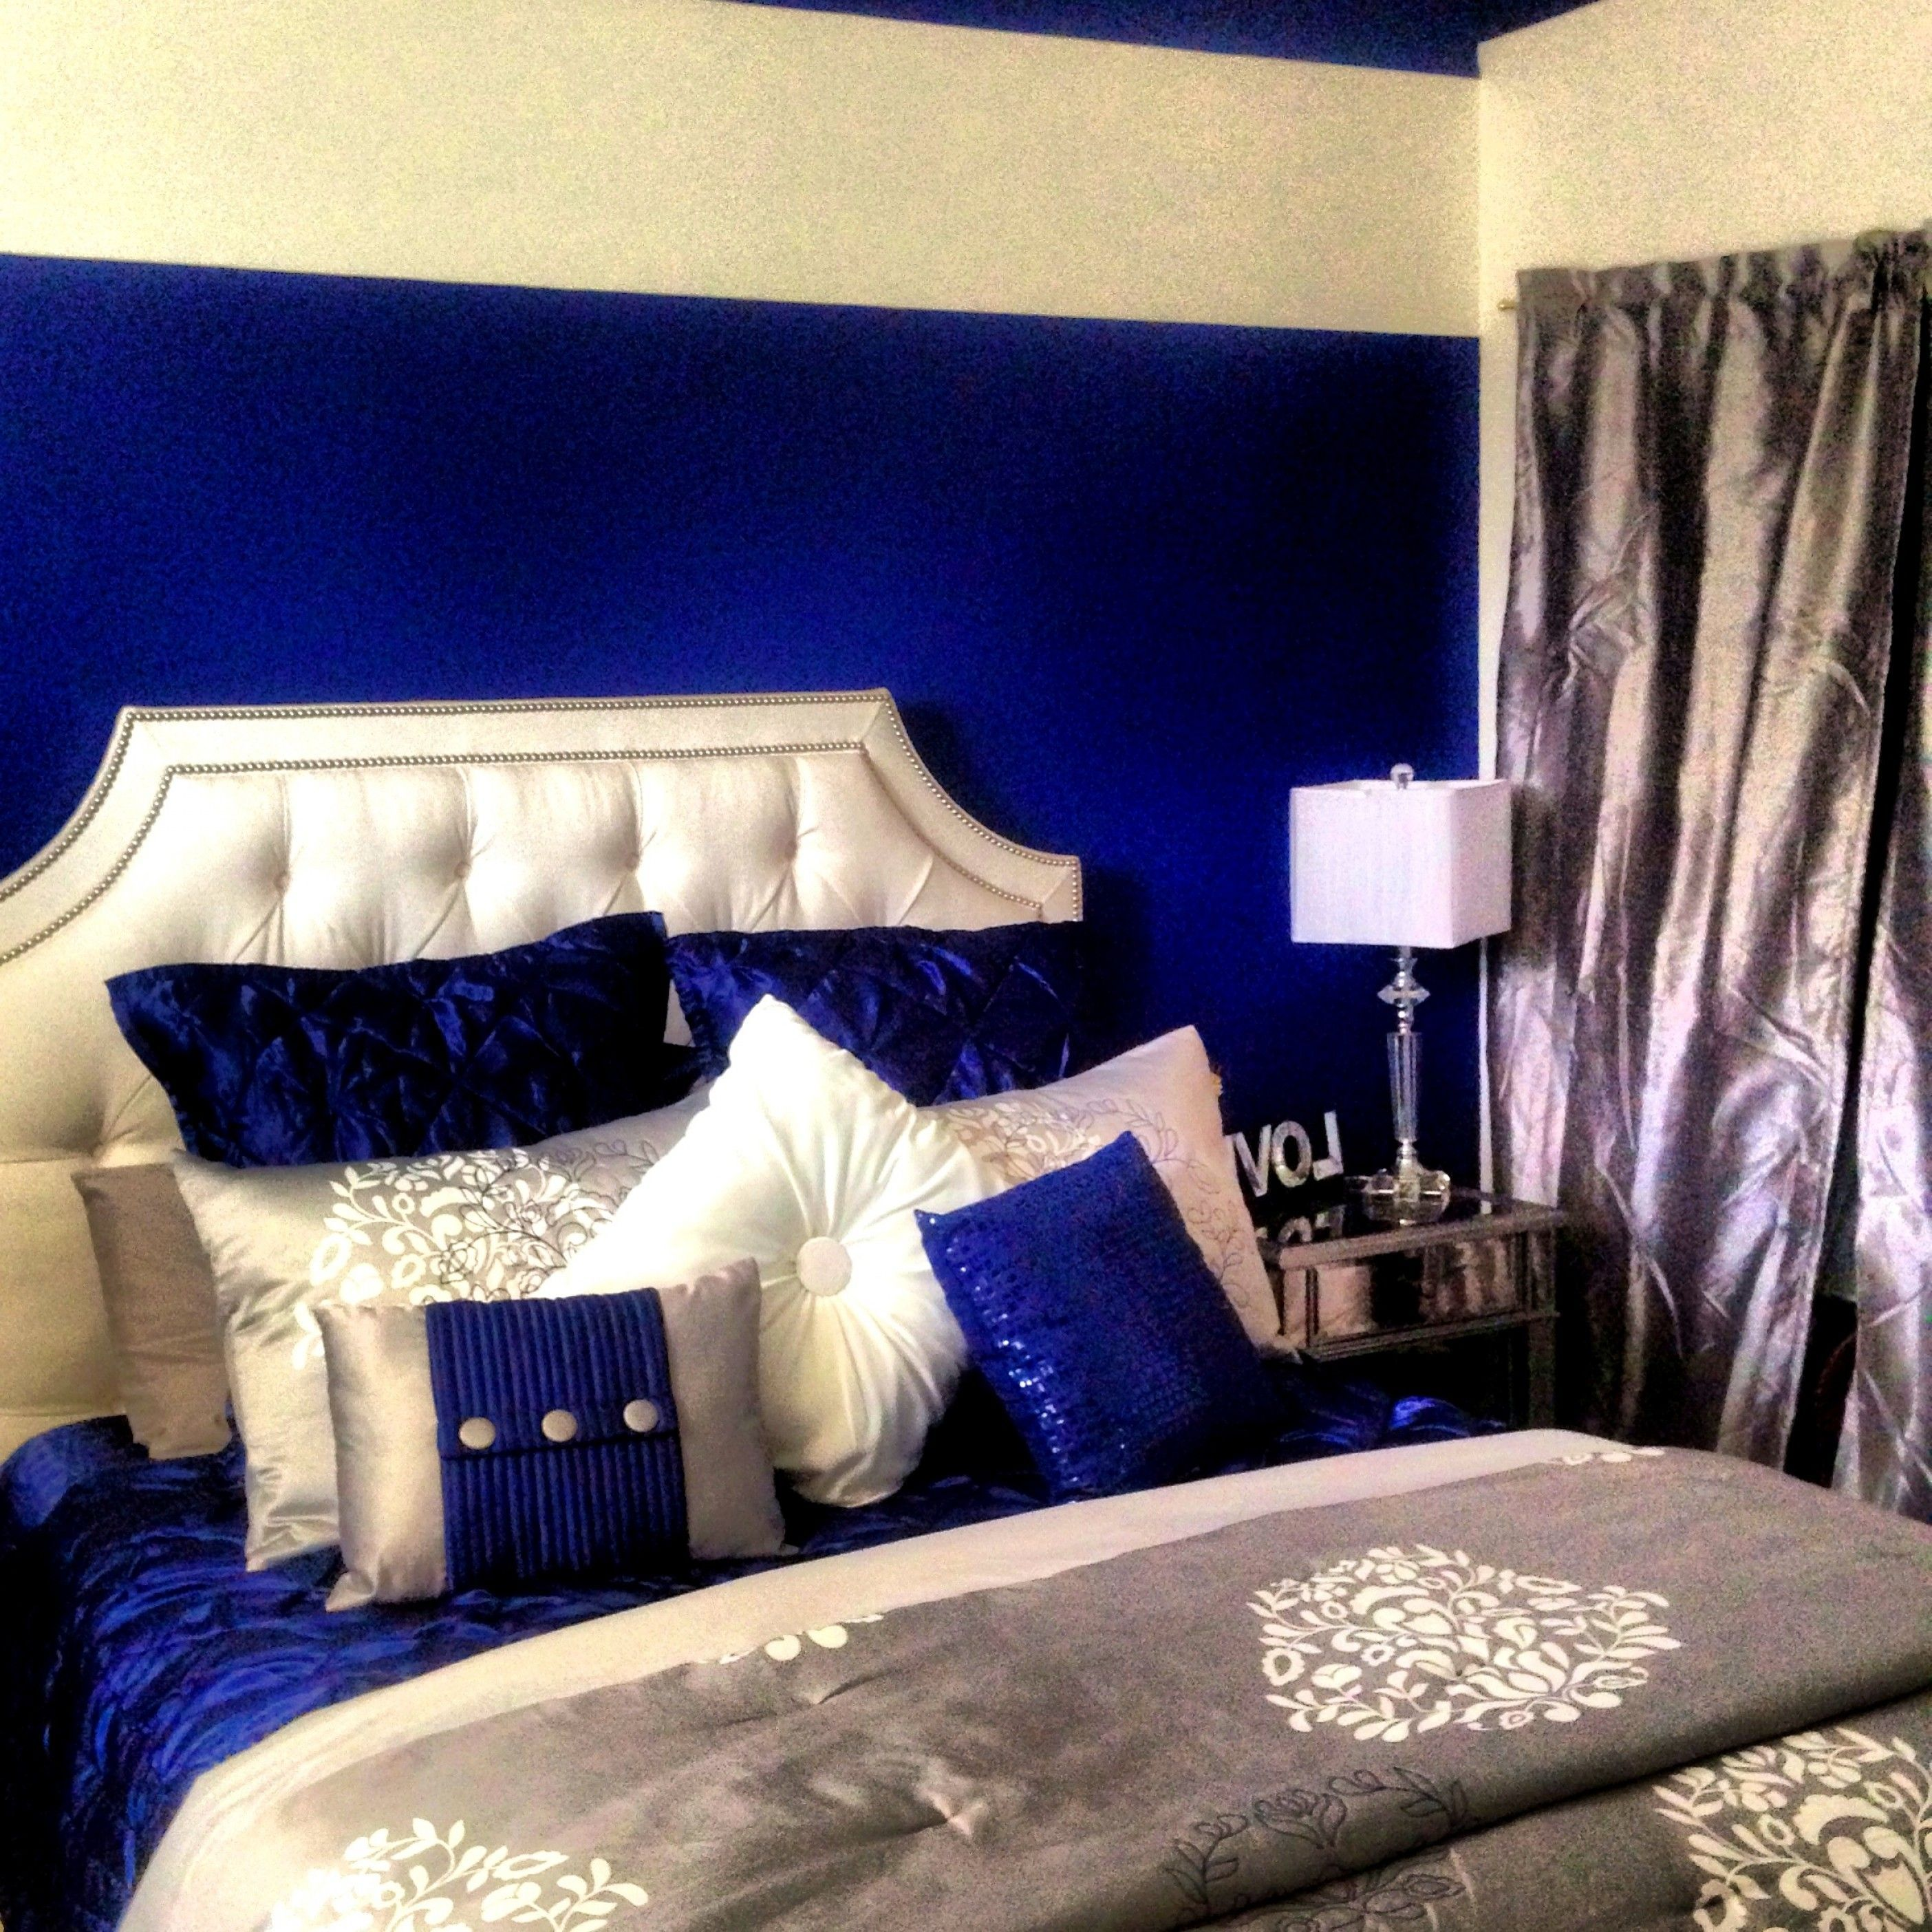 Royal Blue And Black Bedroom Ideas Home Sweet Home Royal Blue Blue Room Decor Blue Bedroom Decor Blue And Gold Bedroom